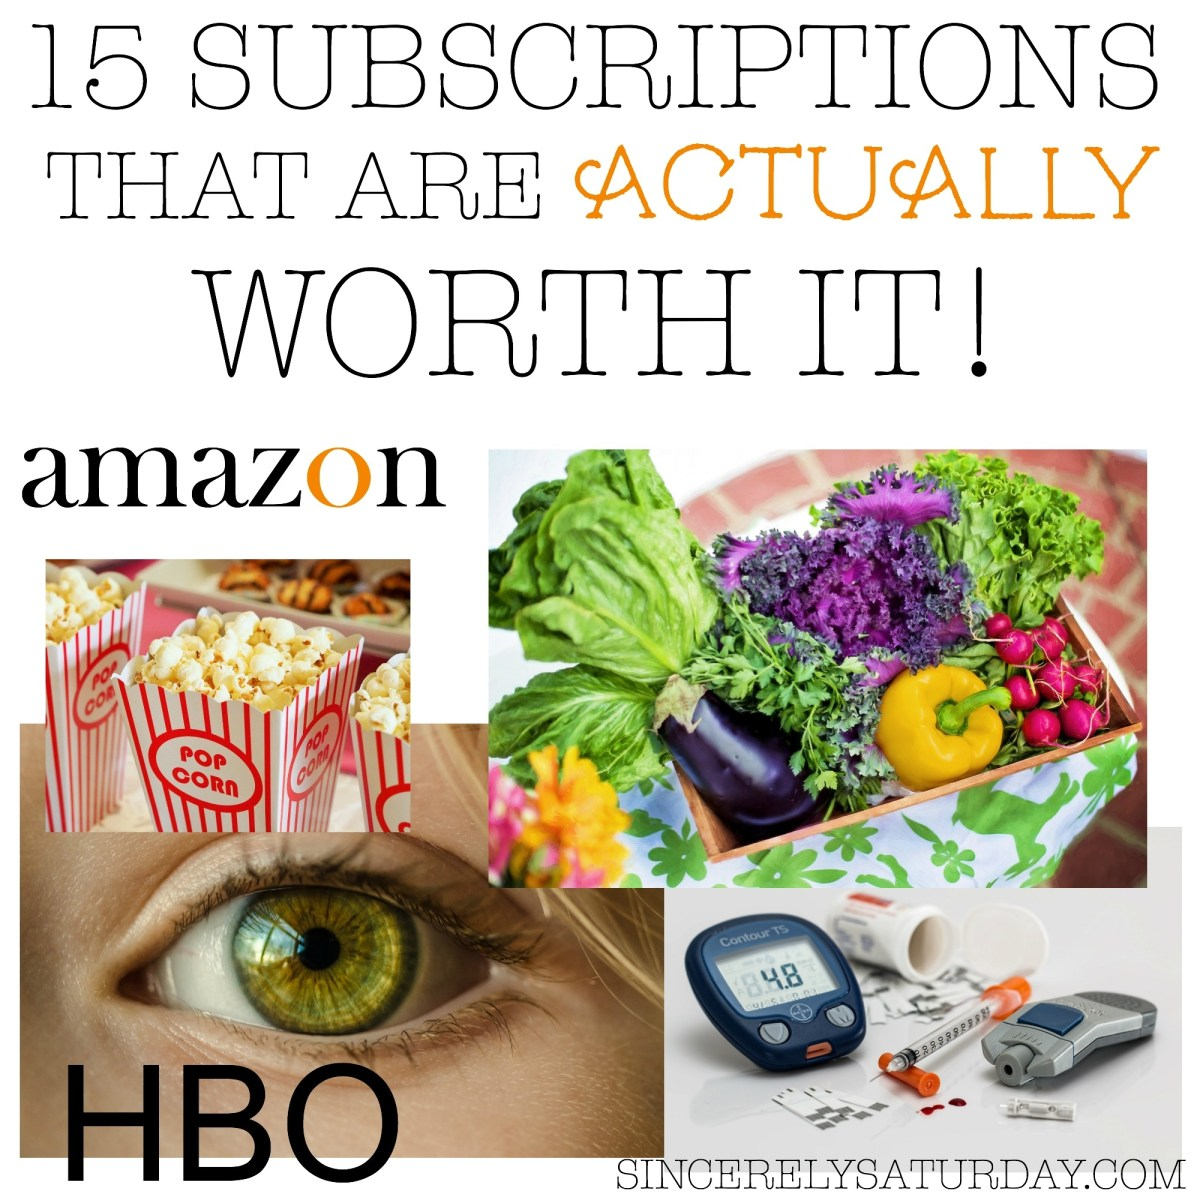 15 SUBSCRIPTIONS THAT ARE ACTUALLY WORTH IT!